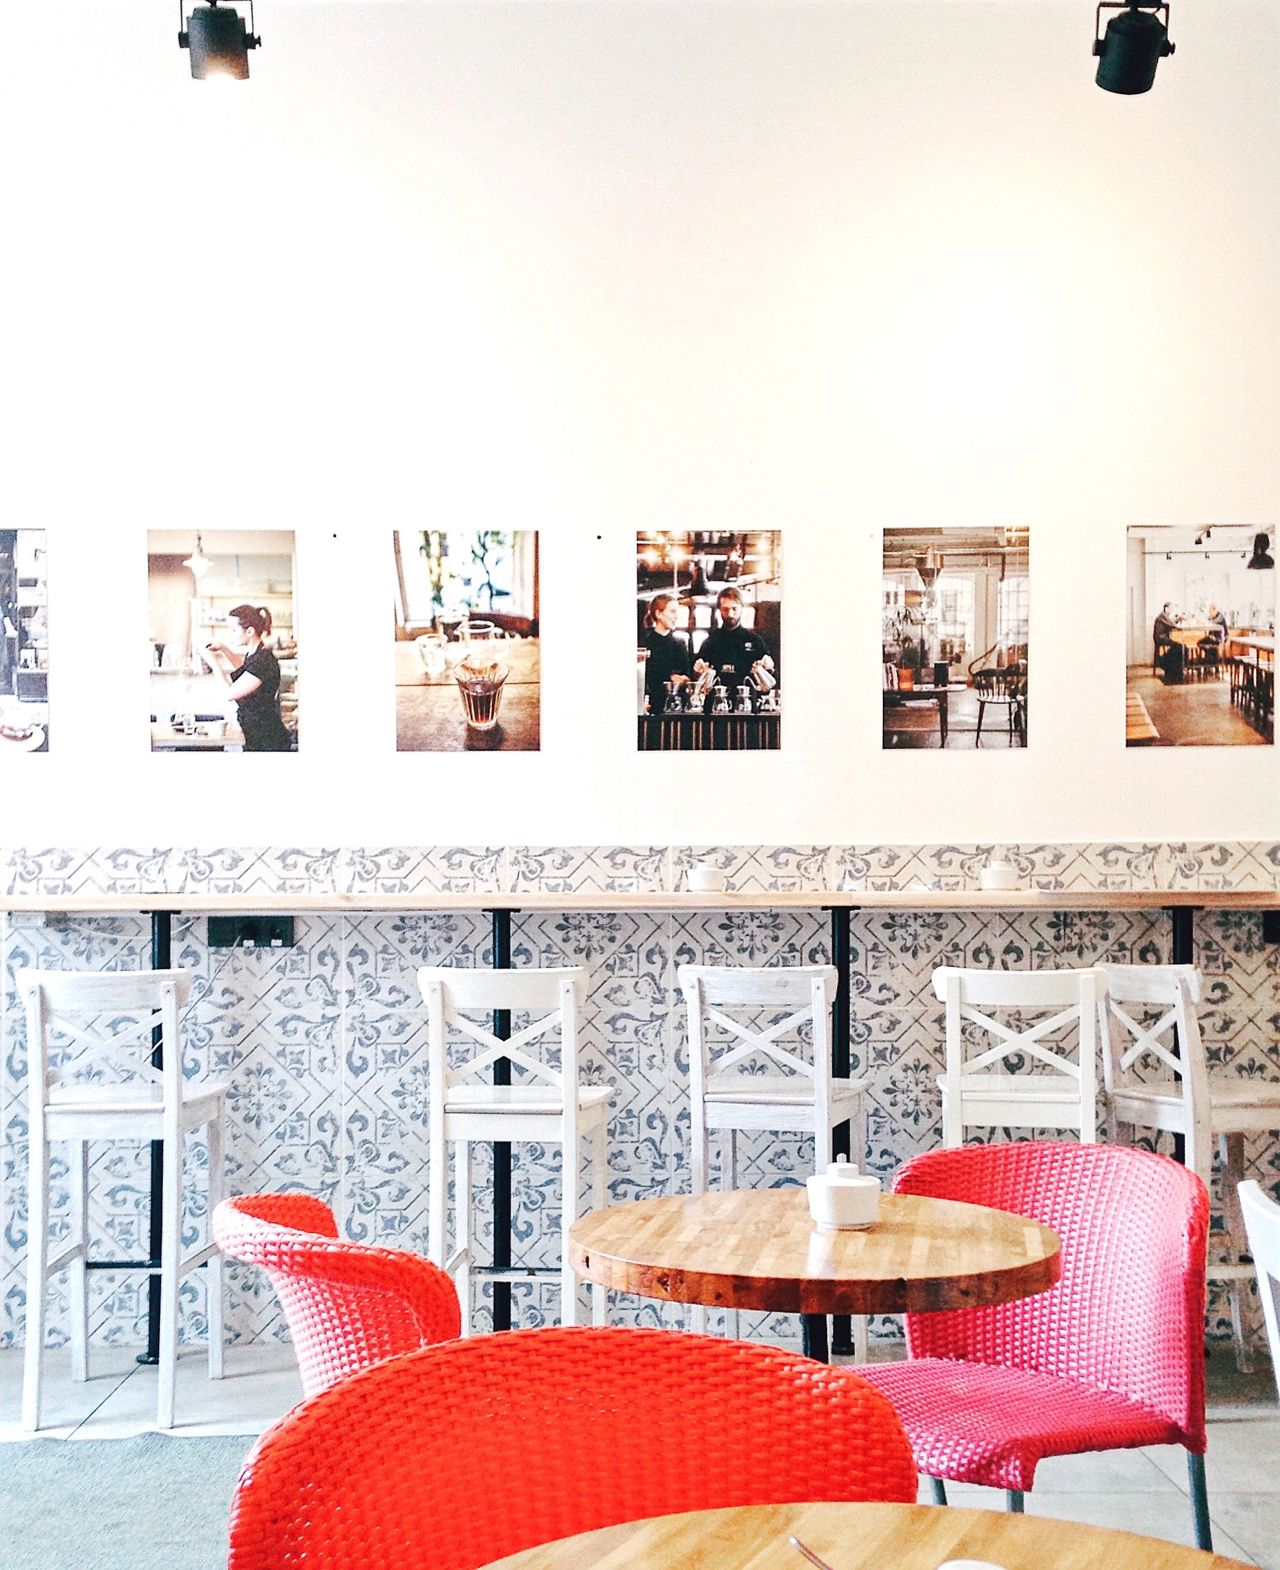 Coffee shop No People Chair Indoors  Table Home Interior Coffee Shop Architecture Interior Design Coffee Time Home Showcase Interior Coffee Break